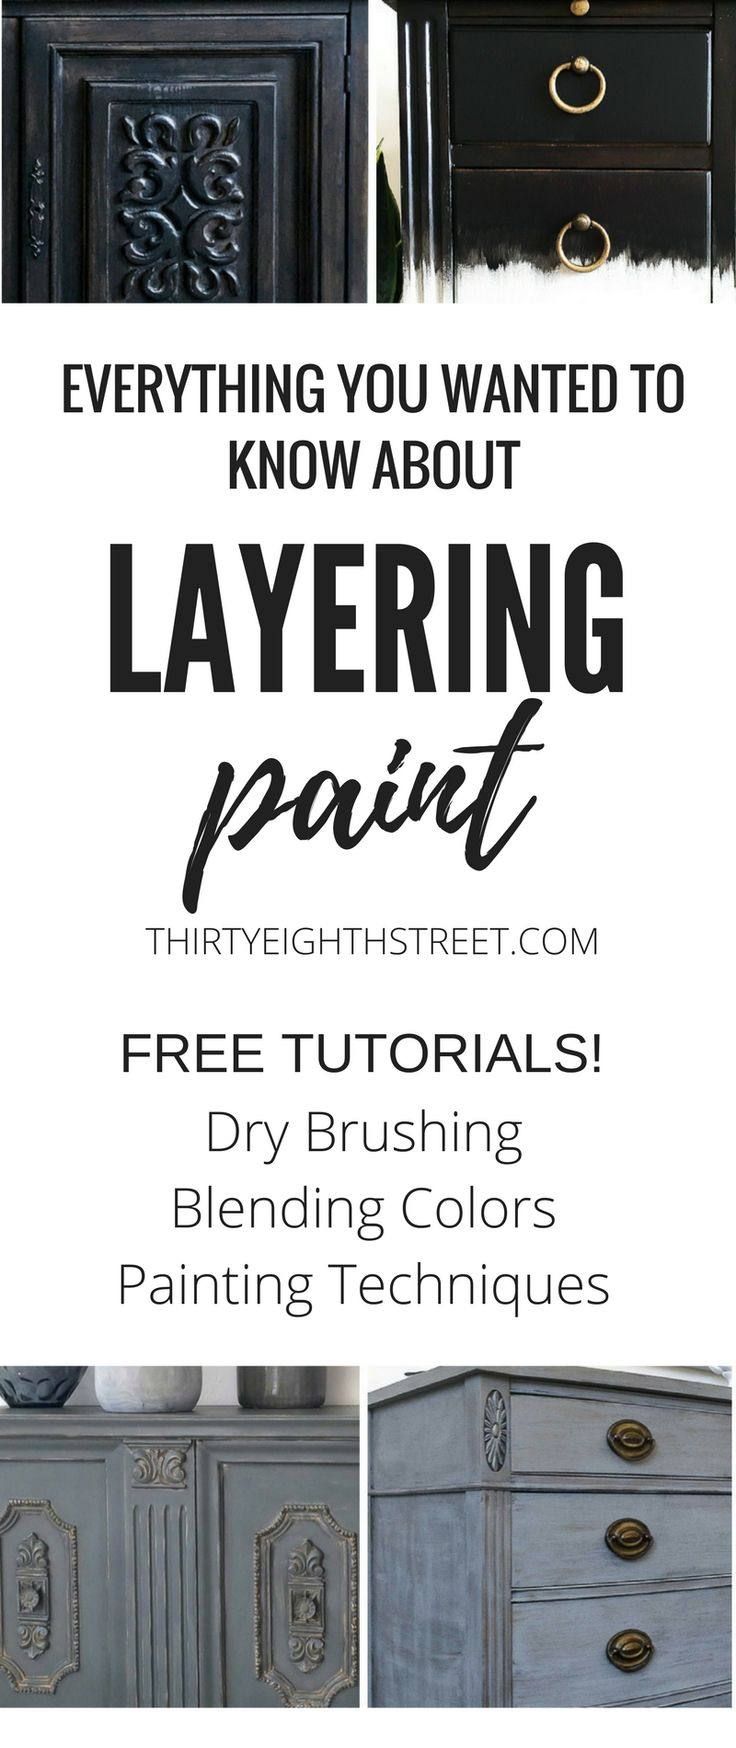 Furniture Before and After Makeover! AWESOME FREE Painting Tutorials! Learn how to layer paint on furniture. Layering Paint Techniques. Painted Furniture Ideas. Layering Paint on Furniture. Layering Paint. Layering Paint on Wood. Layering Paint Colors. Furniture Color Combos. Painted Furniture. Furniture Painting Tutorials. Dry Brushing. #thirtyeighthstreet #paintedfurniture